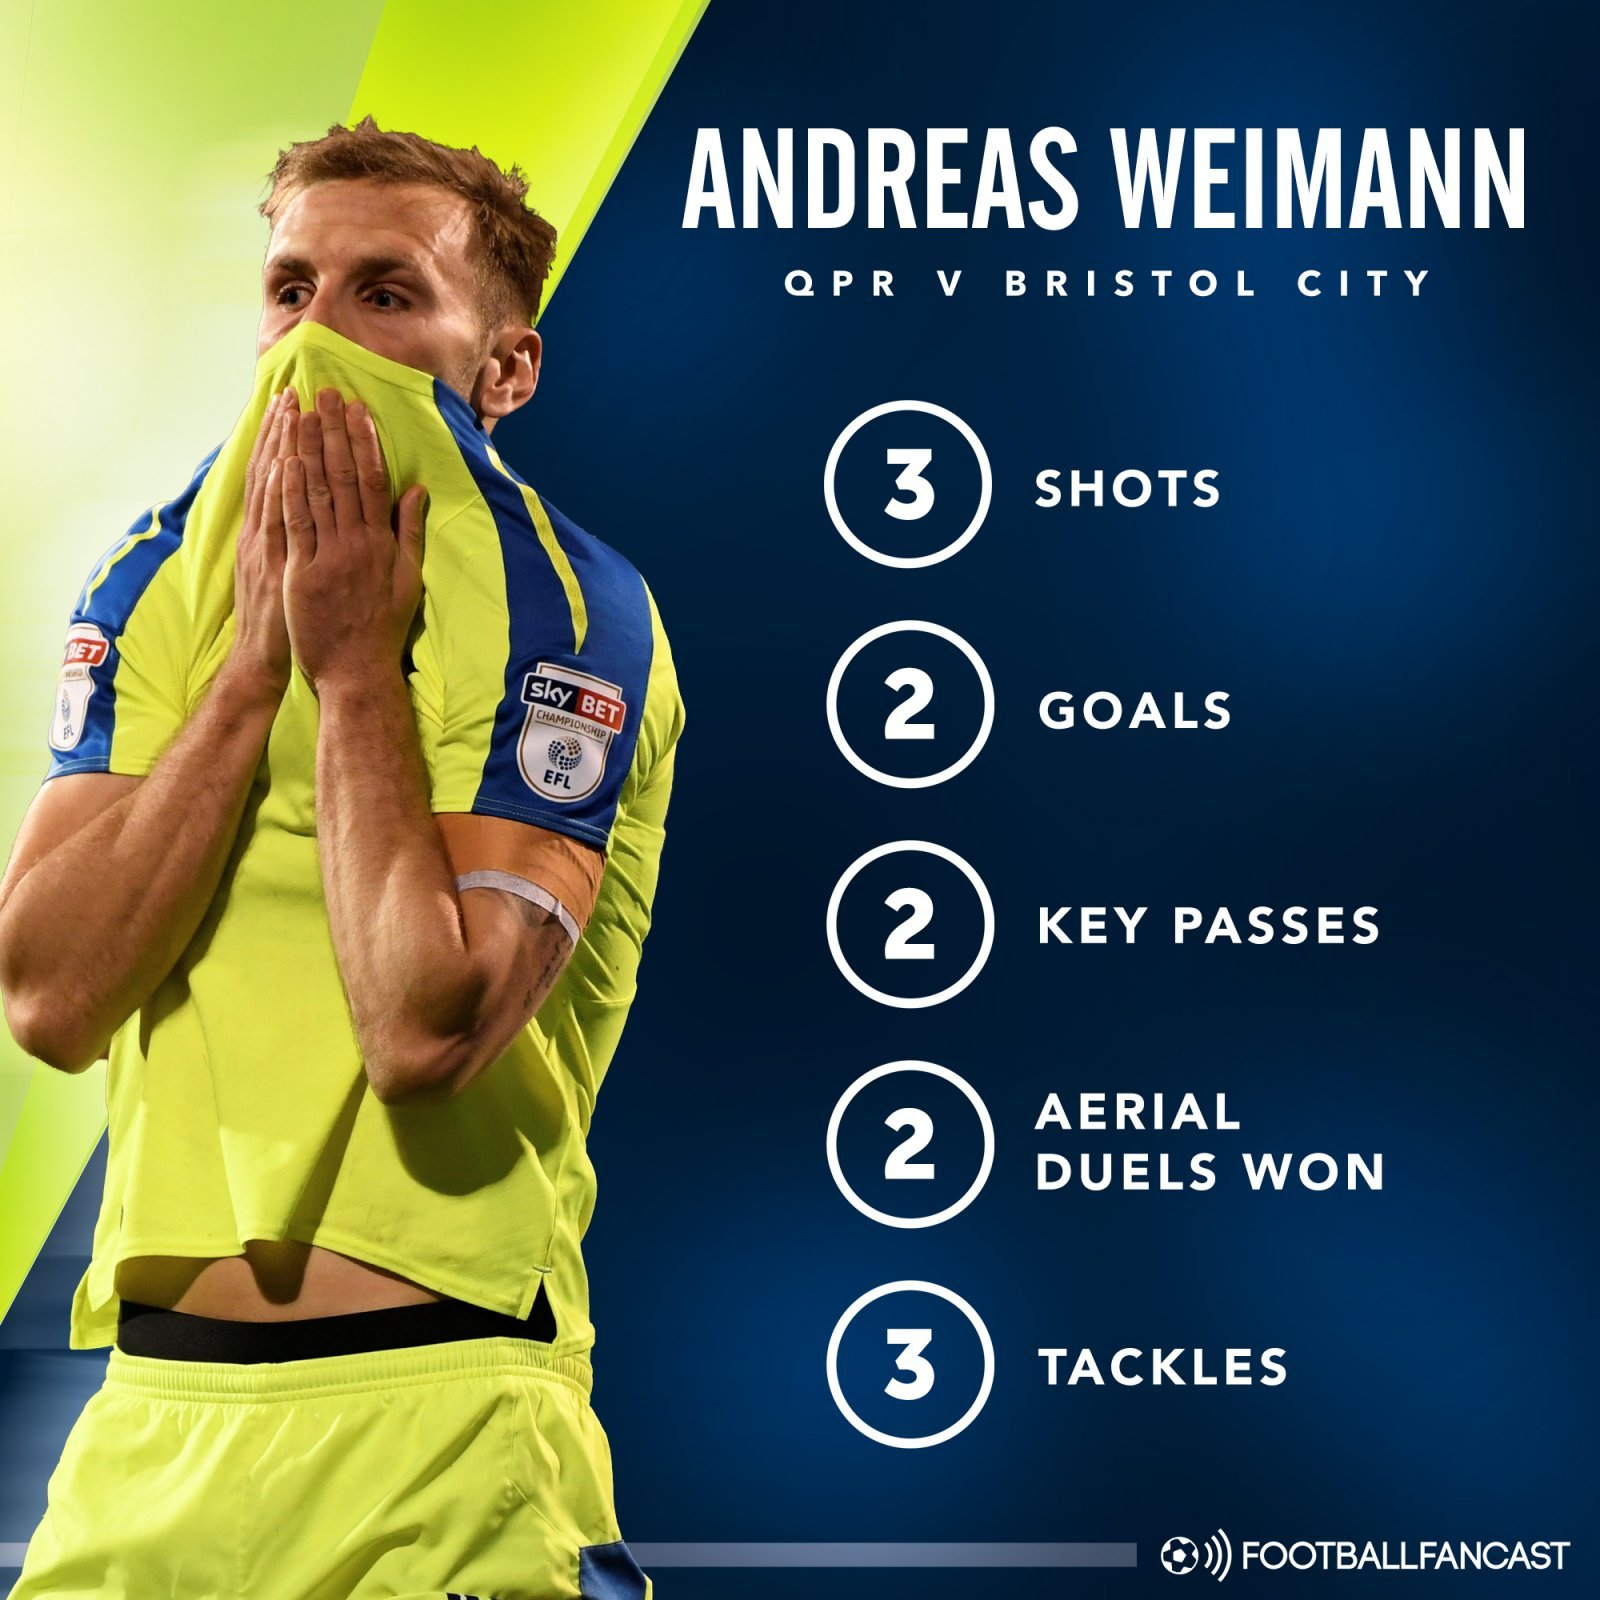 Andreas Weimann stats in Bristol City's 3-0 win vs QPR